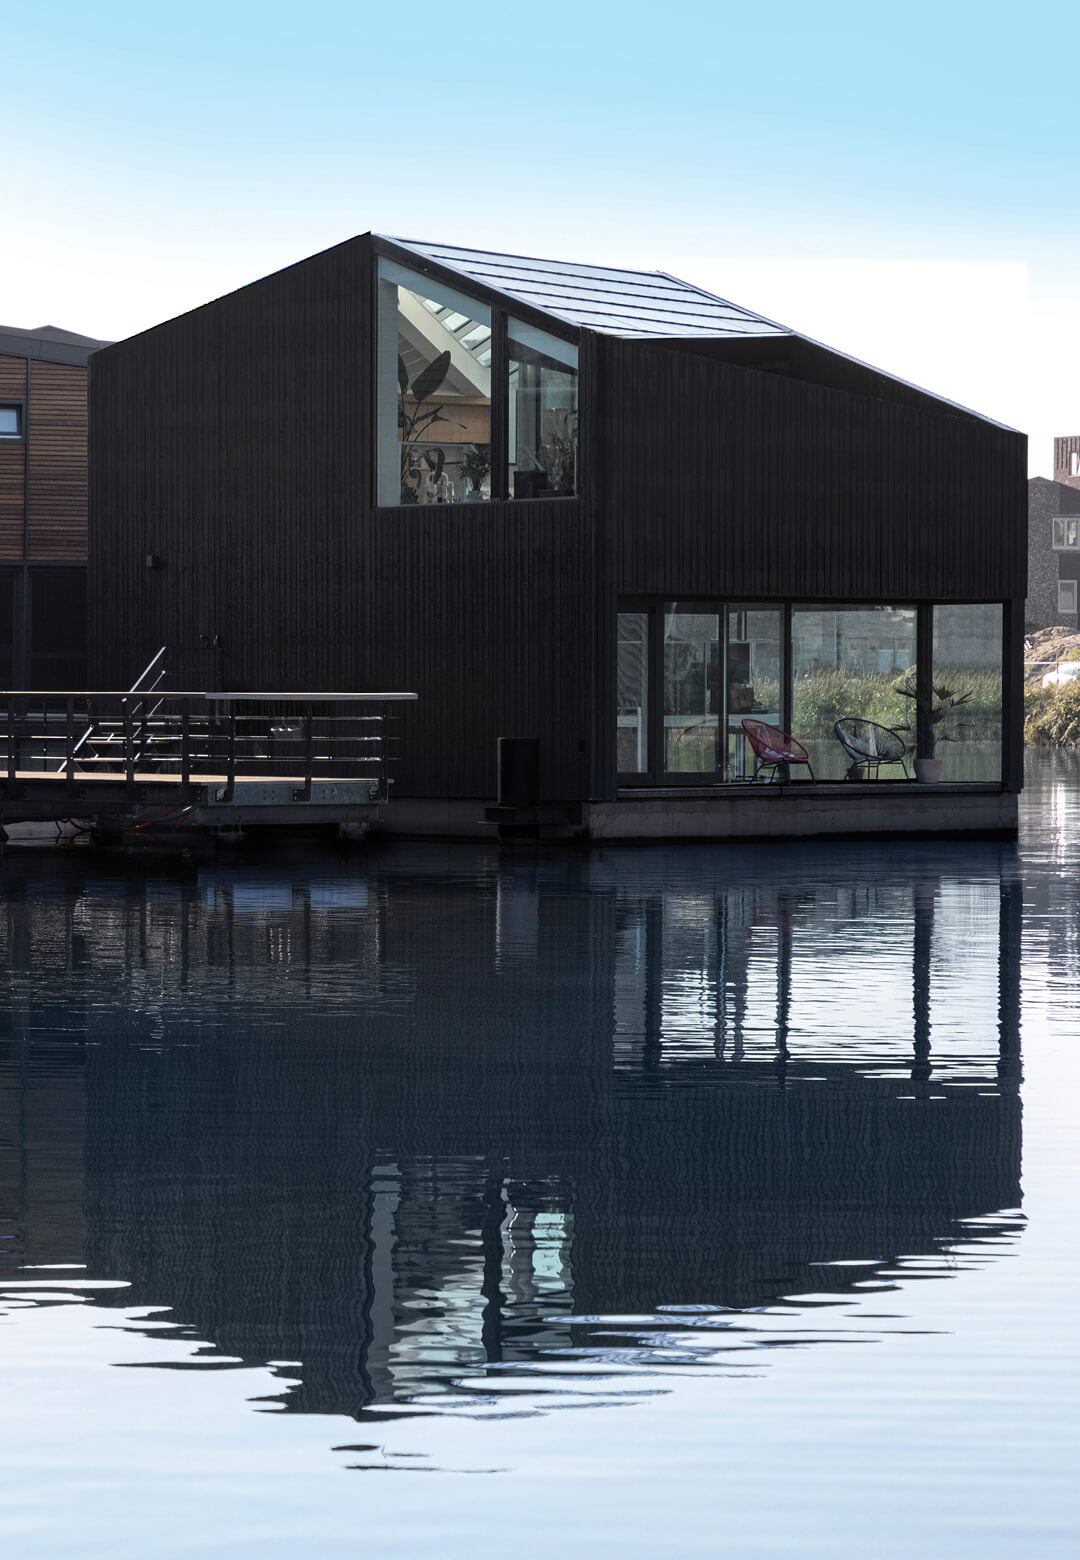 Floating Home at Schoonschip in Amsterdam   Floating homes designed by i29 architects   STIRworld